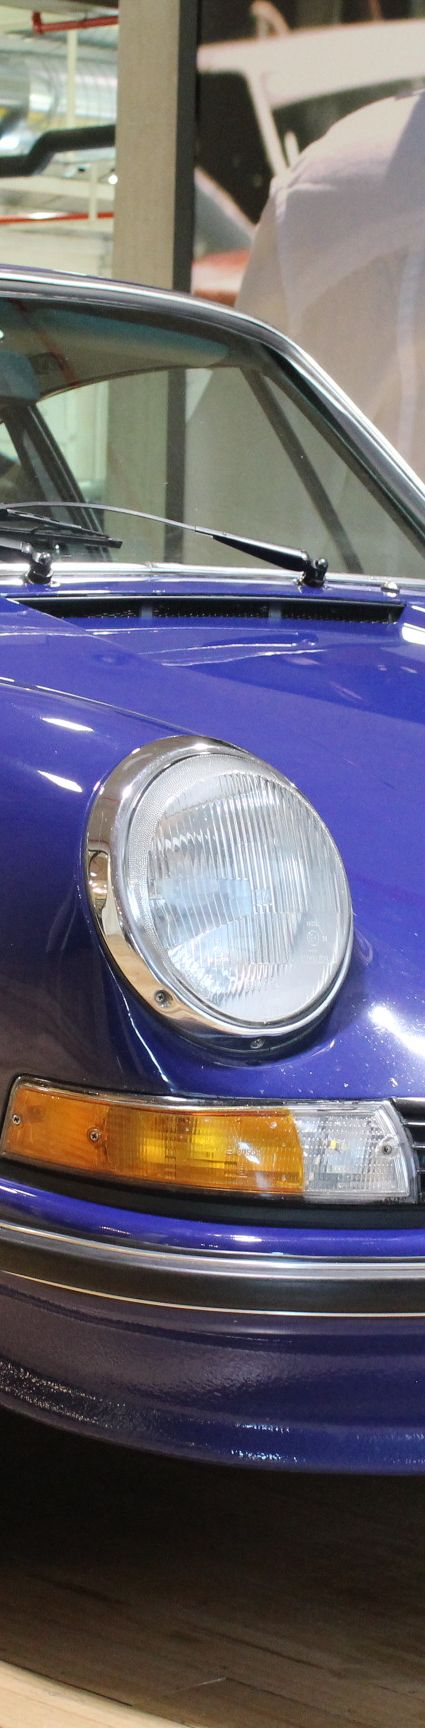 1963 Porsche 911 2.4 E (Fitted with 2.7 Motor) - for sale in Australia